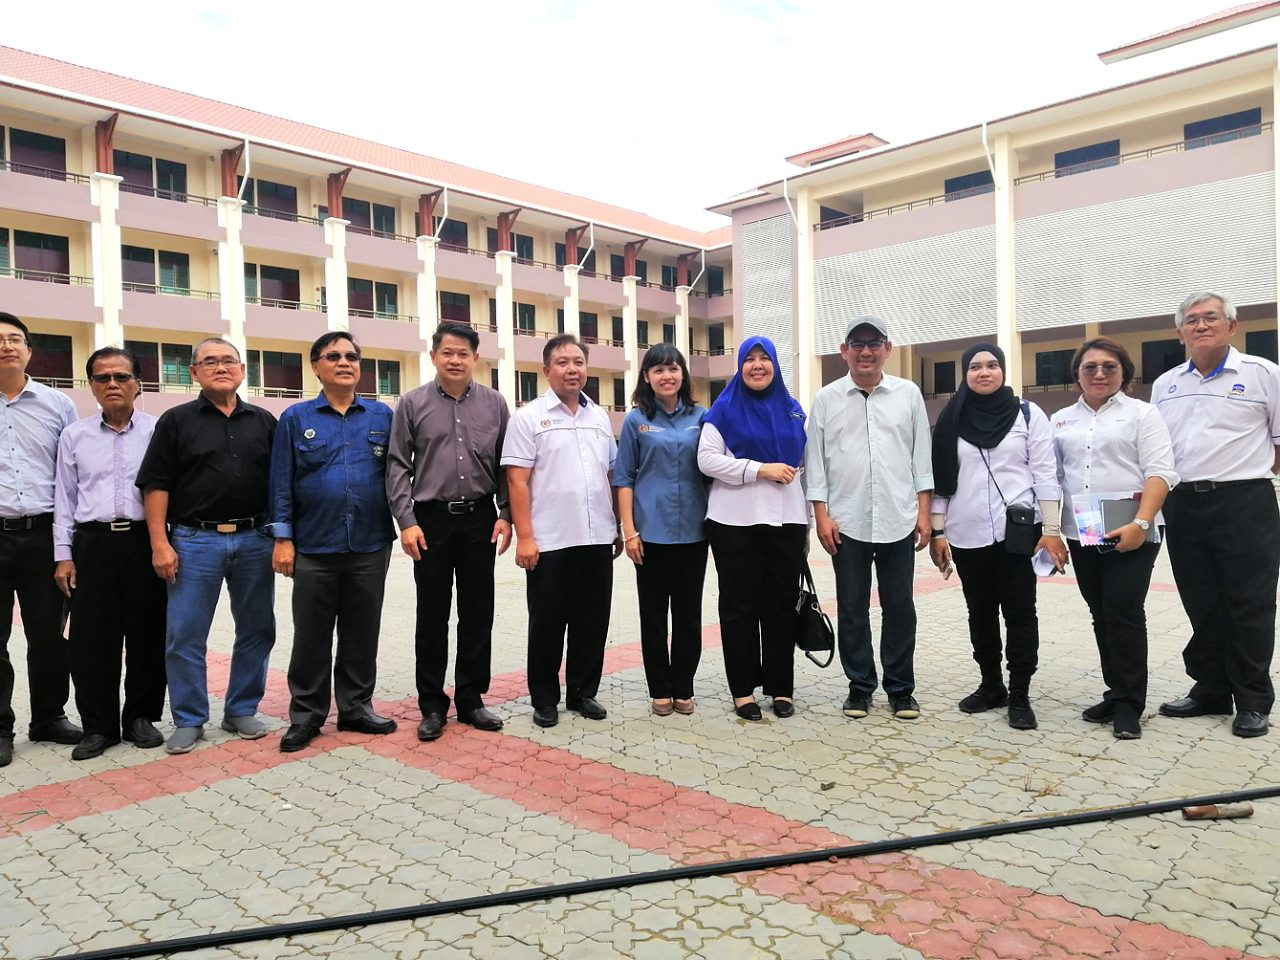 SMK Tudan project to be ready by 2021 — Teo